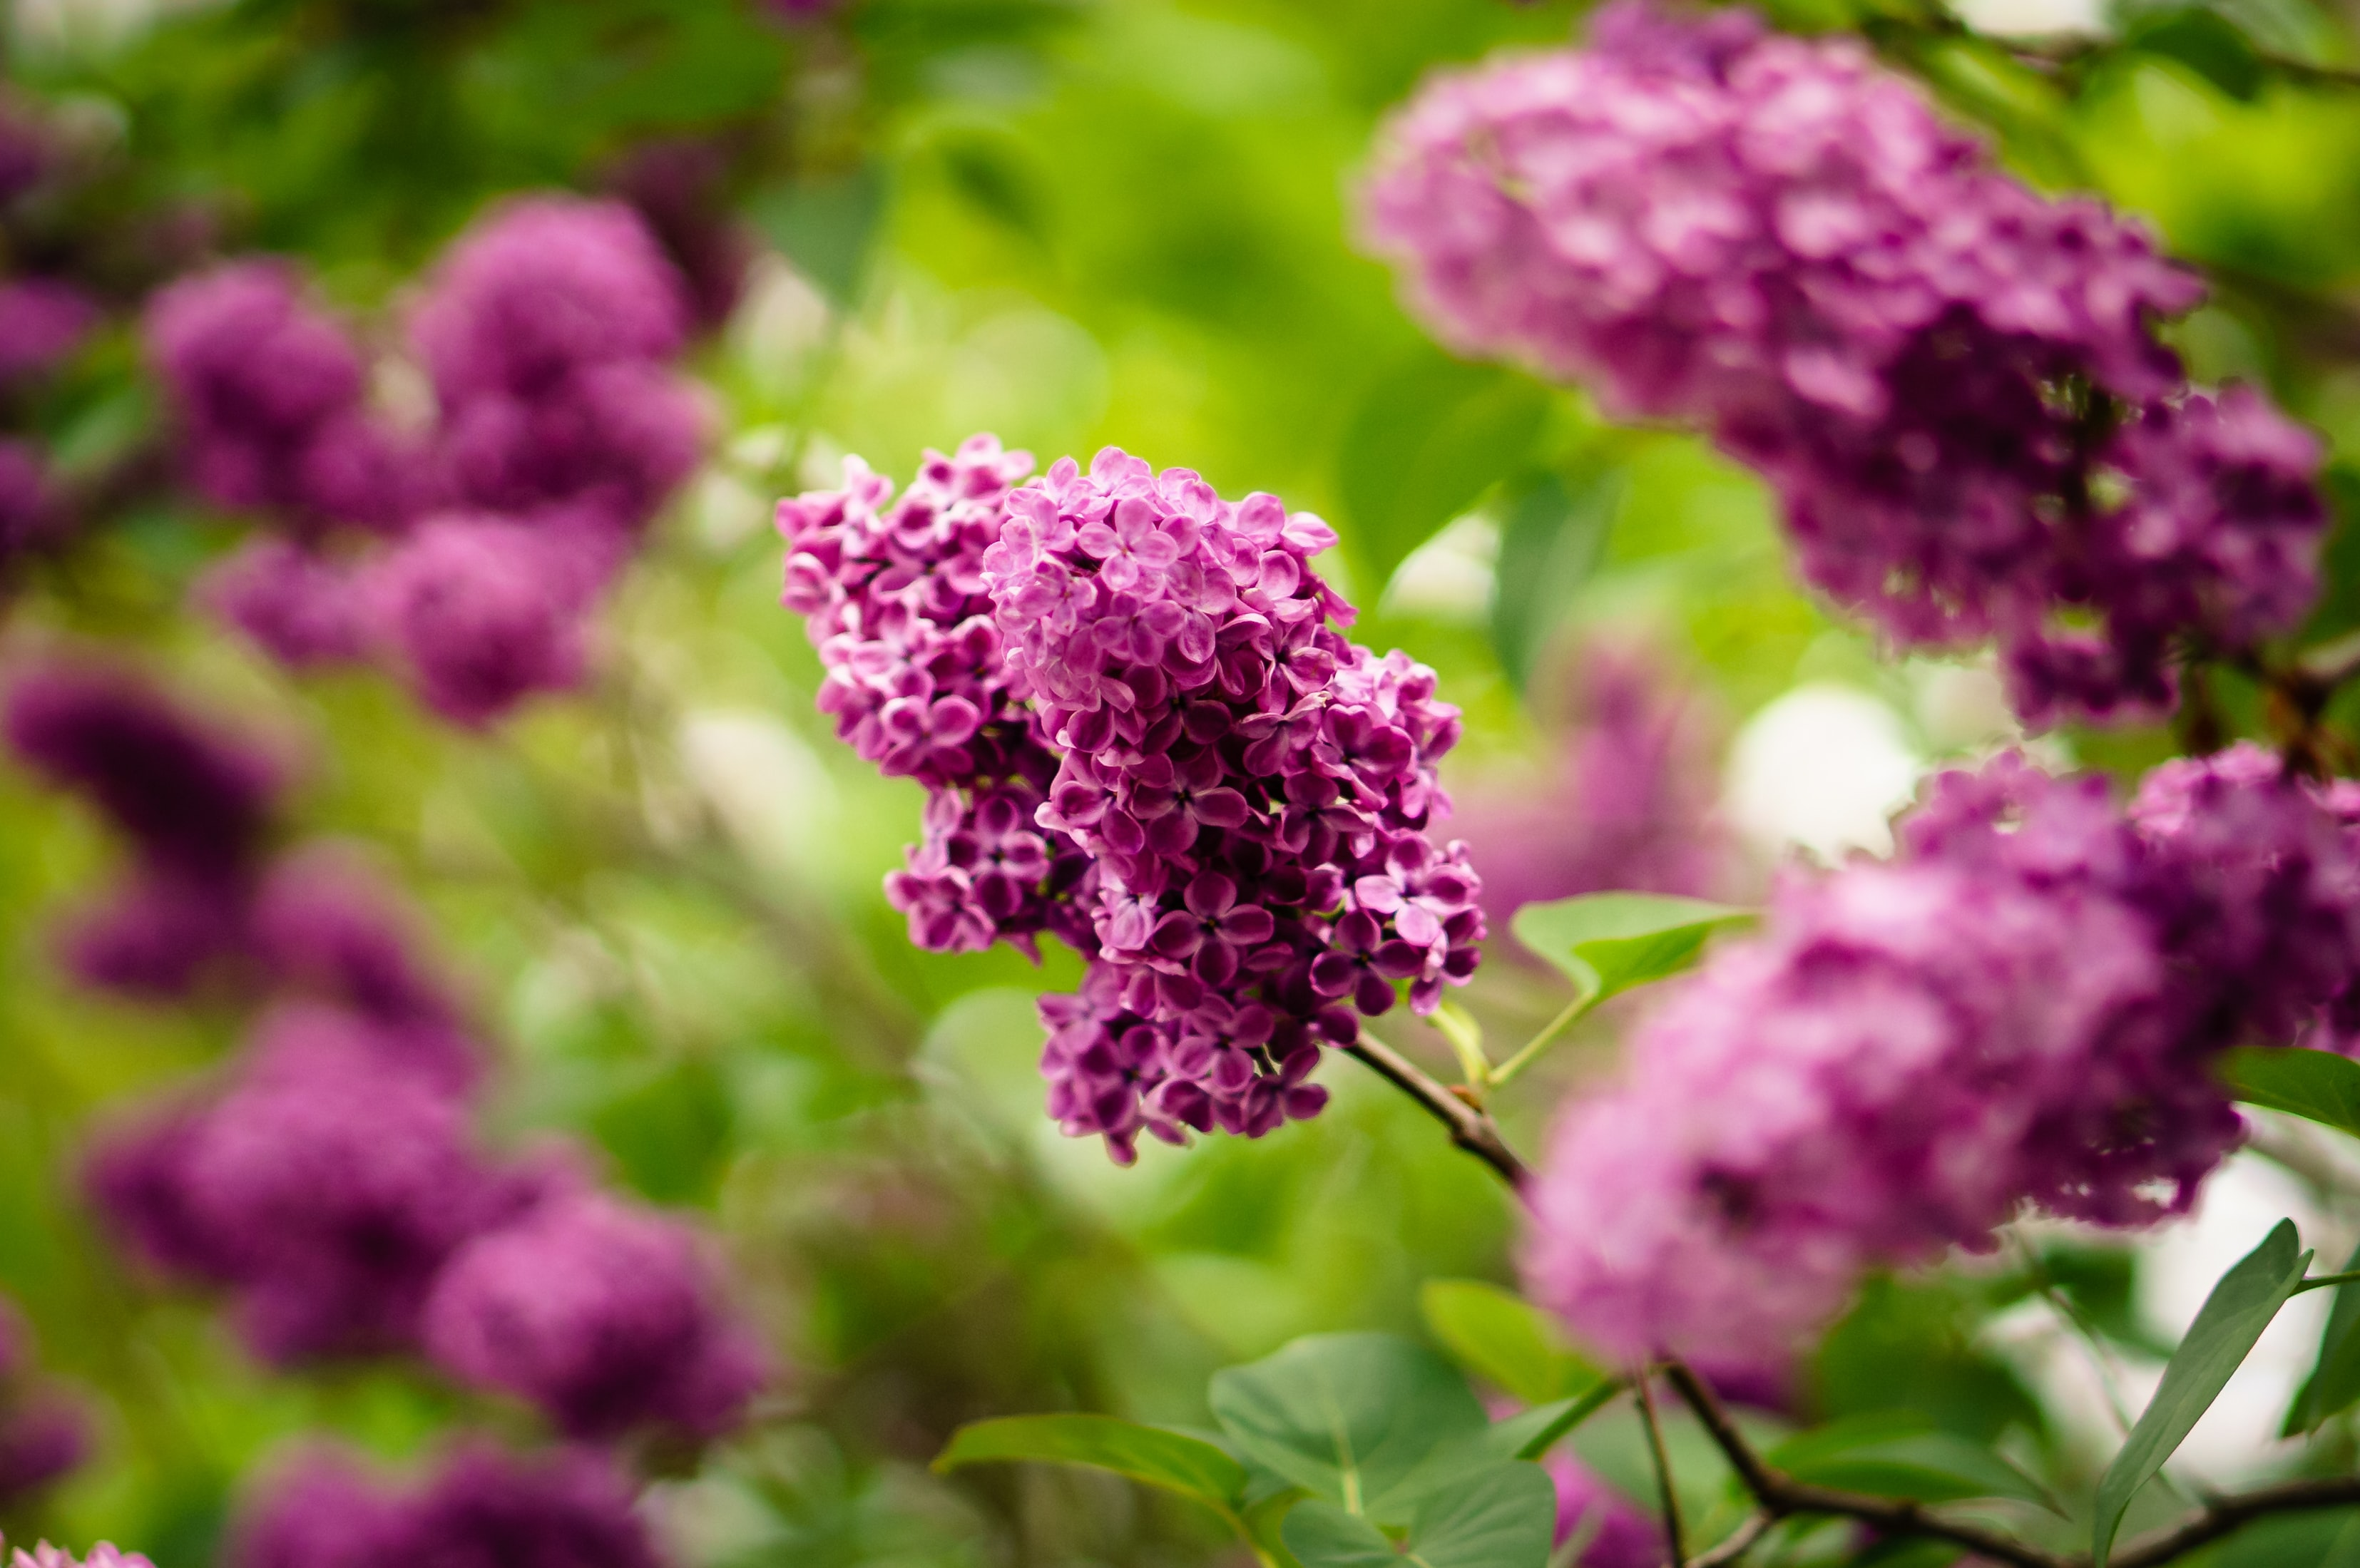 Purple lilac flowers bloom in a green leafy bush